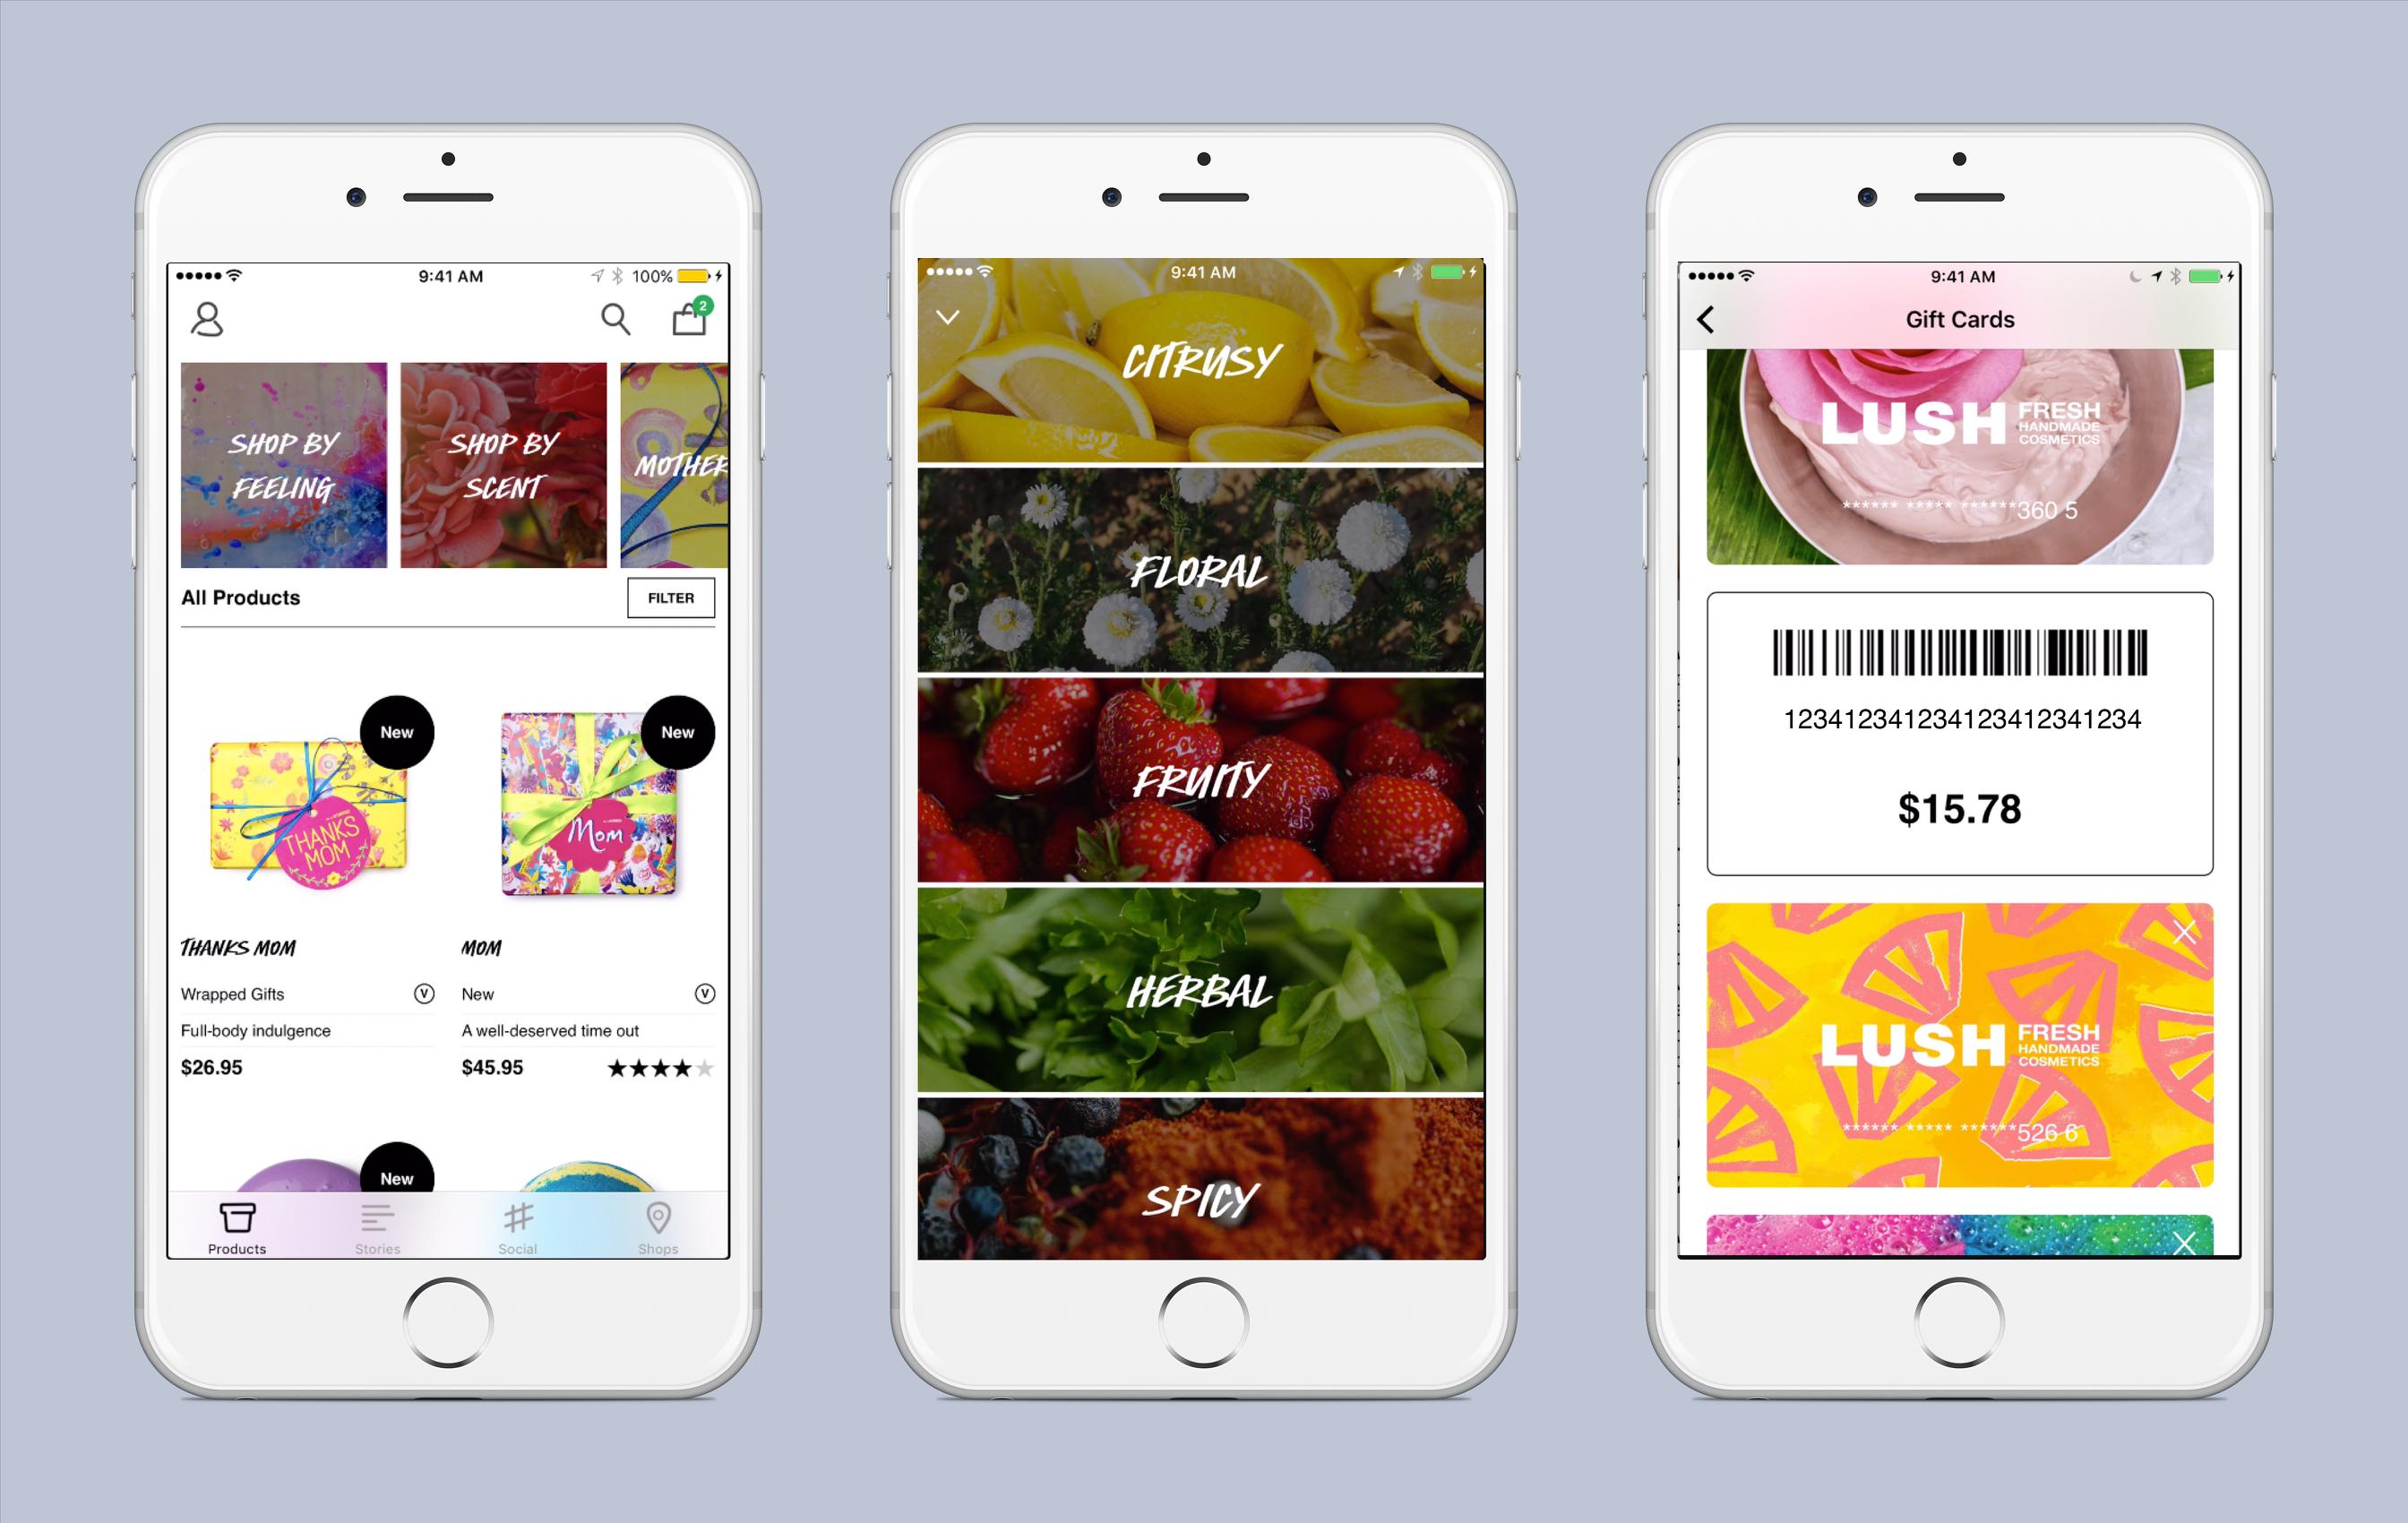 Lush app allows shopping by feeling and scent